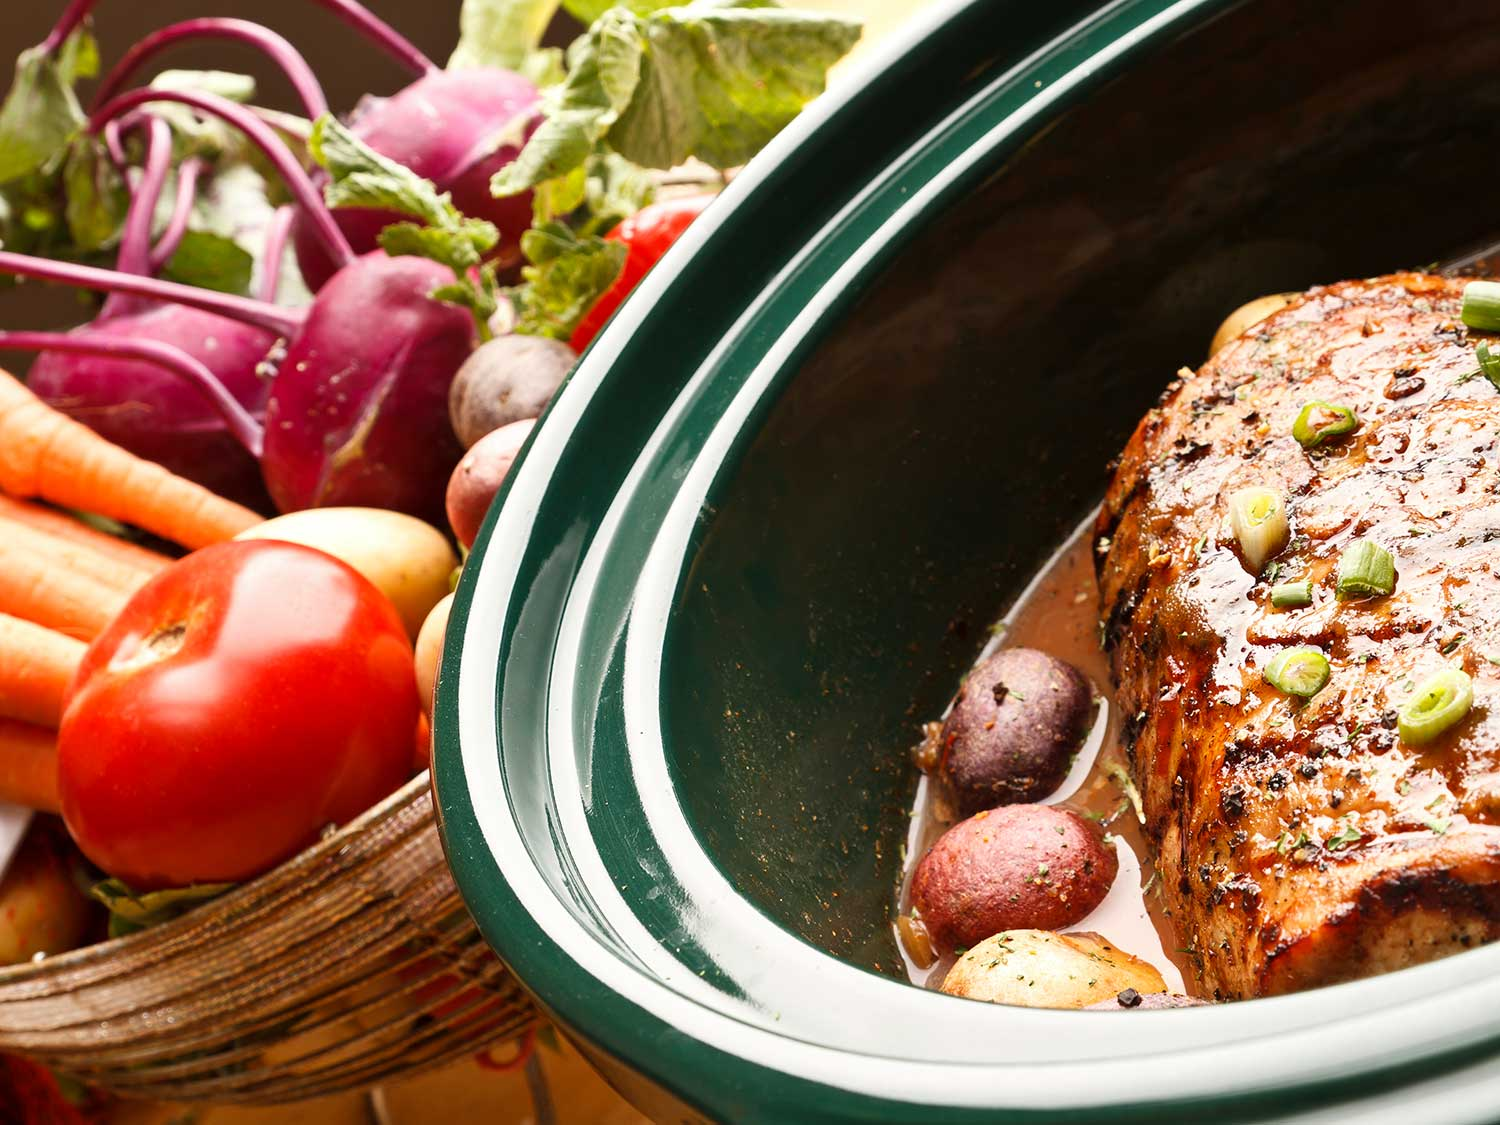 Meal cooking in slow cooker